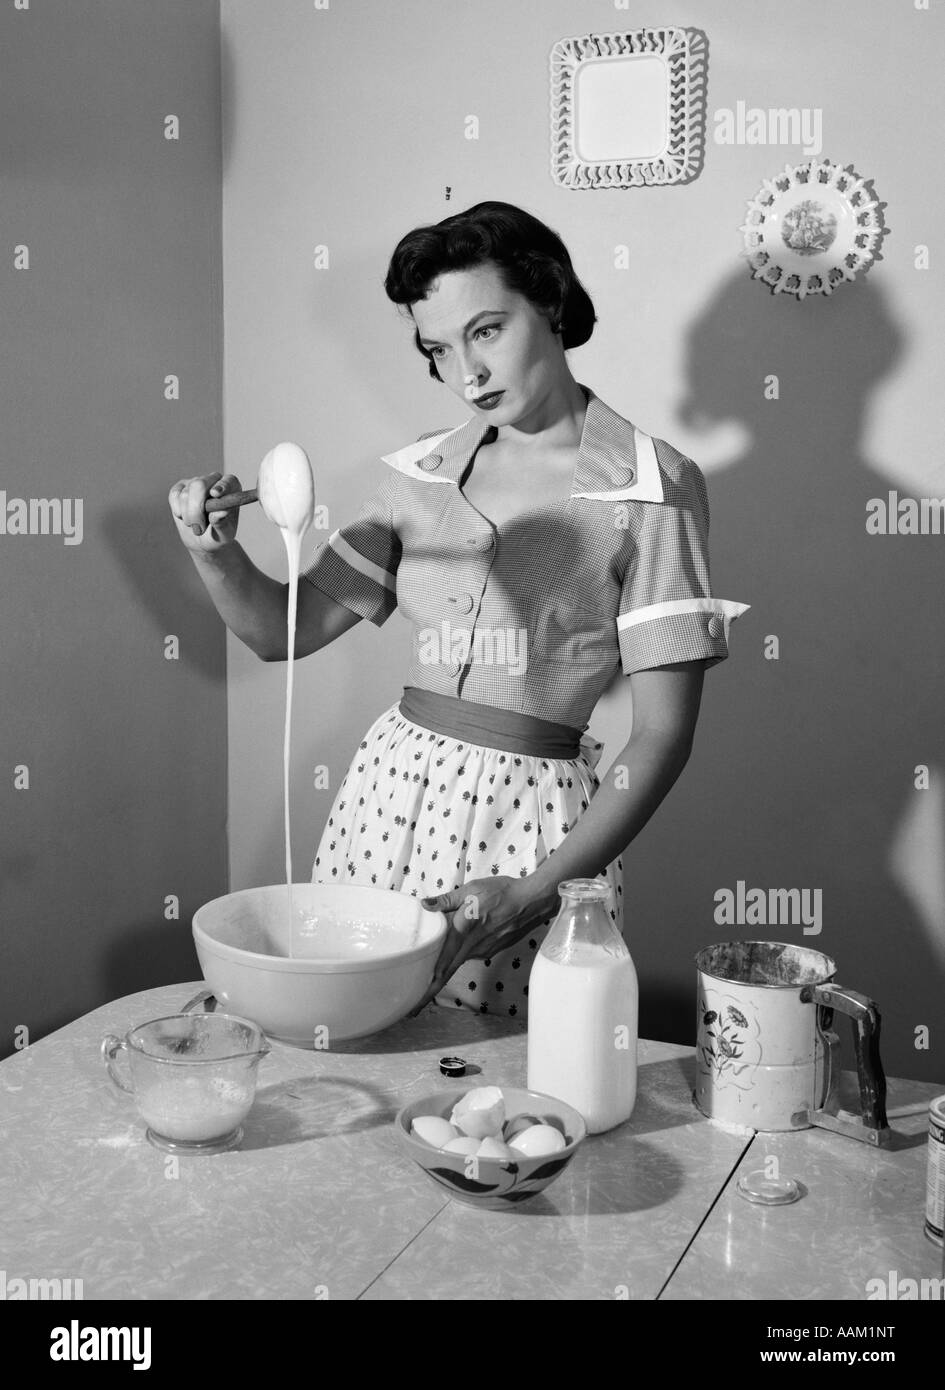 1960s HOUSEWIFE MIXING STICKY BATTER IN KITCHEN - Stock Image